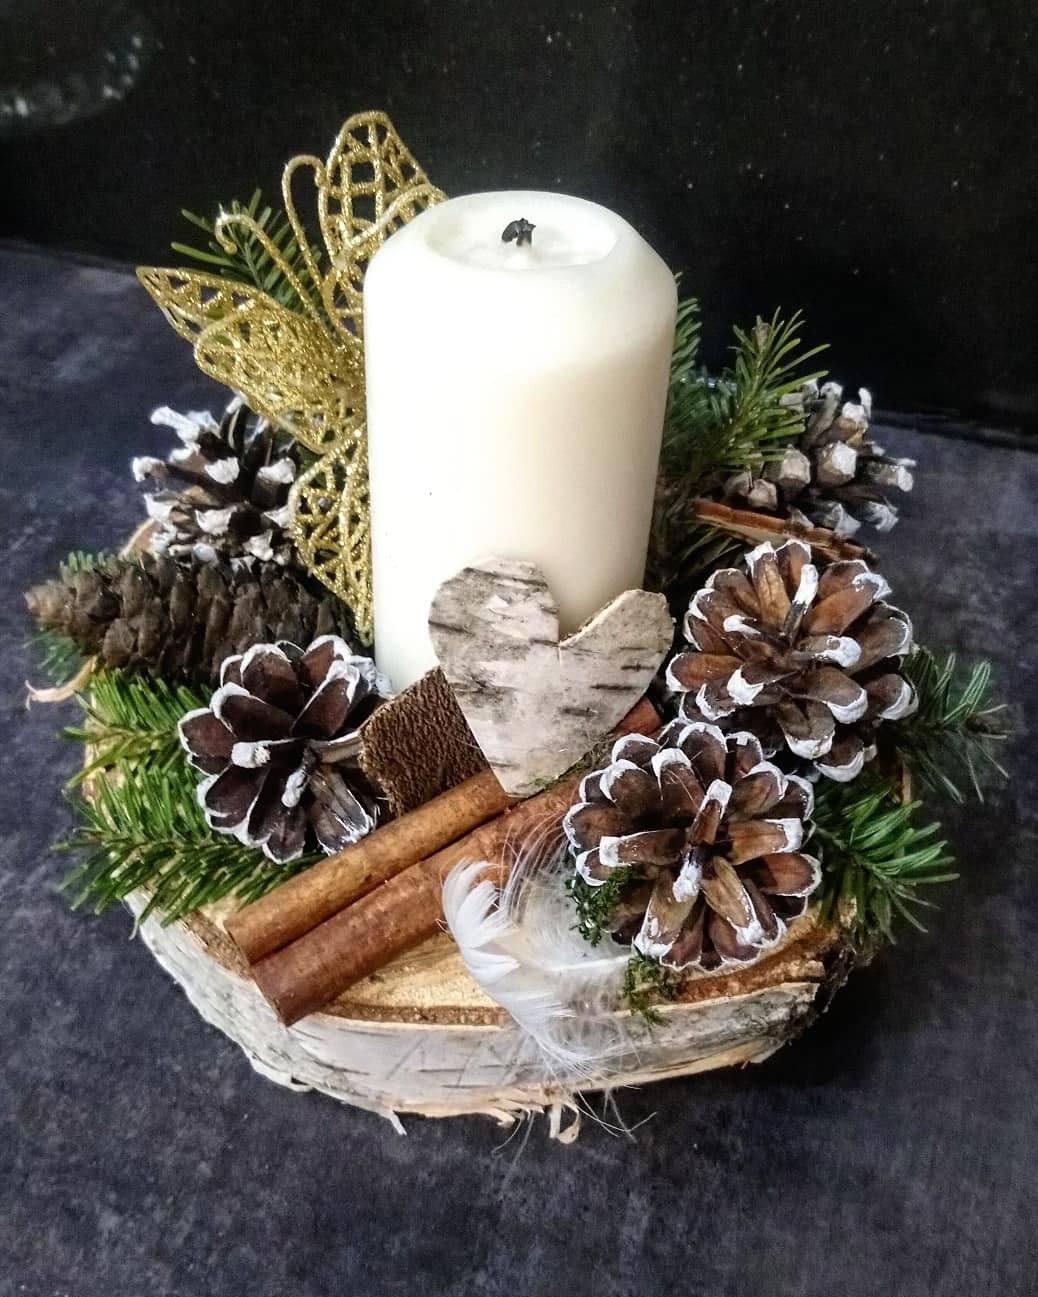 I Love Using Natural Materials For My Craft In 2020 Christmas Decorations Decor Pillar Candles